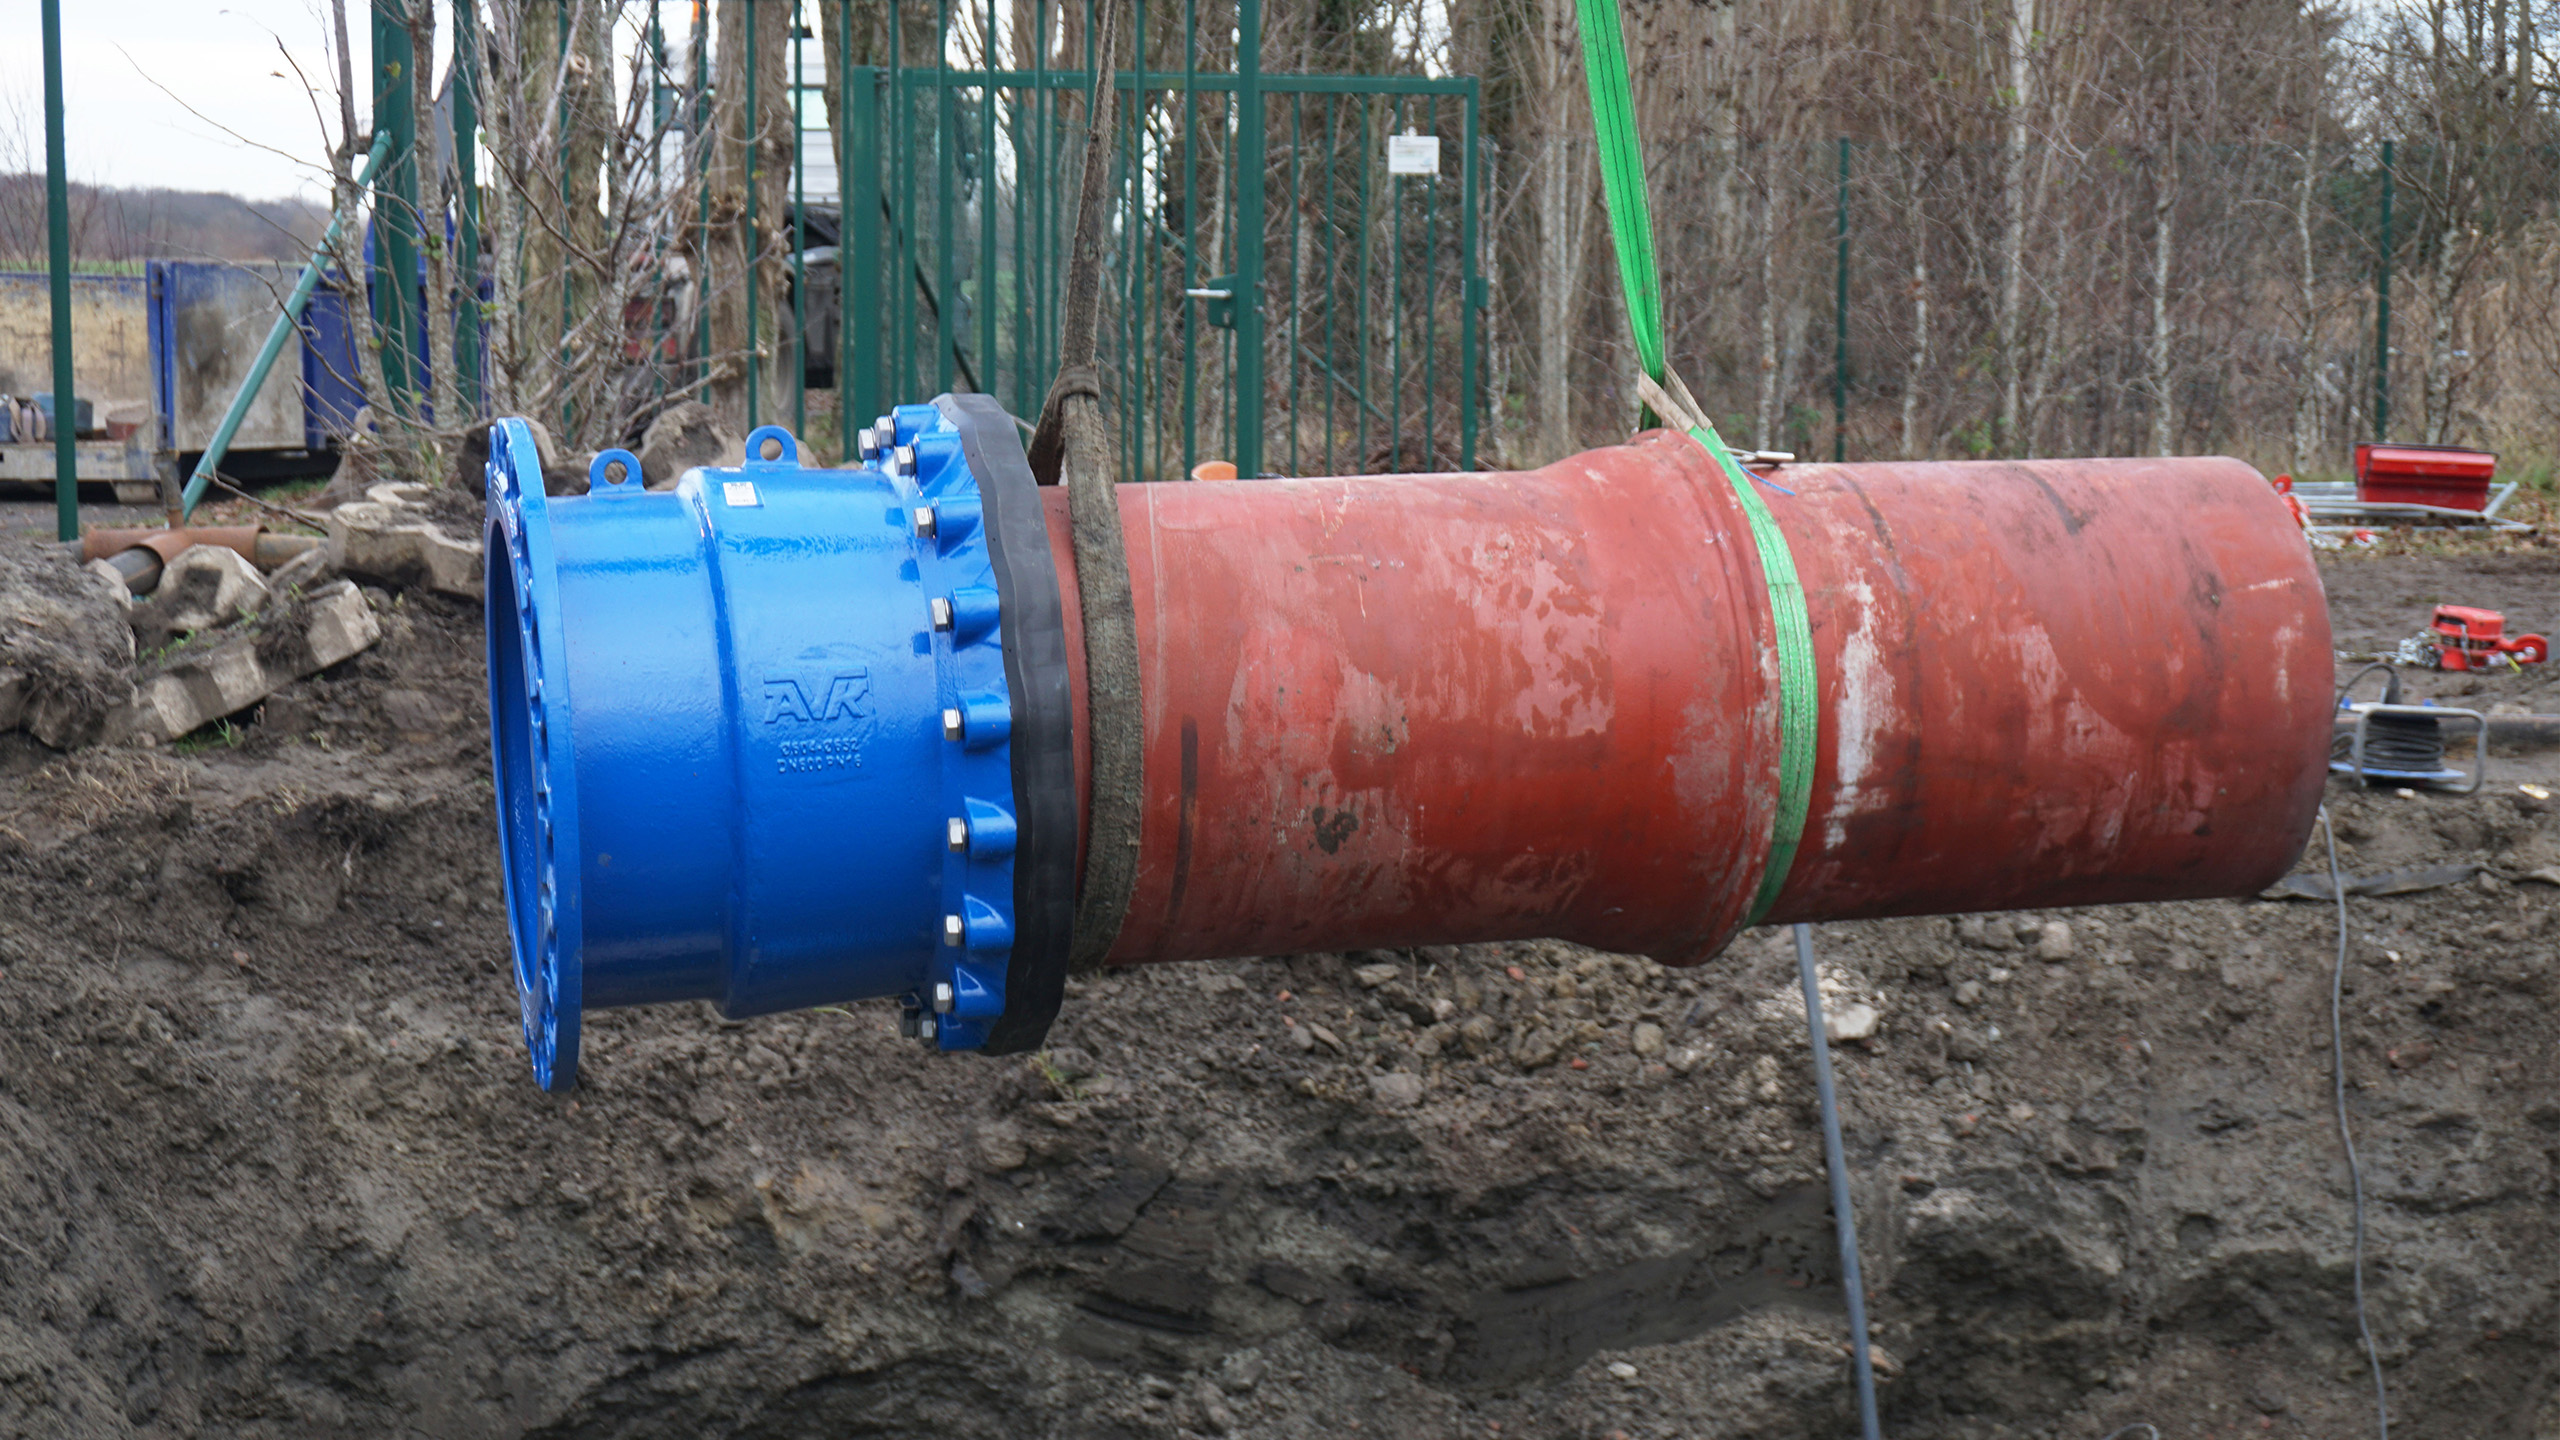 AVK Supa Maxi™ flange adaptor DN600 being installed at wastewater station in Belgium